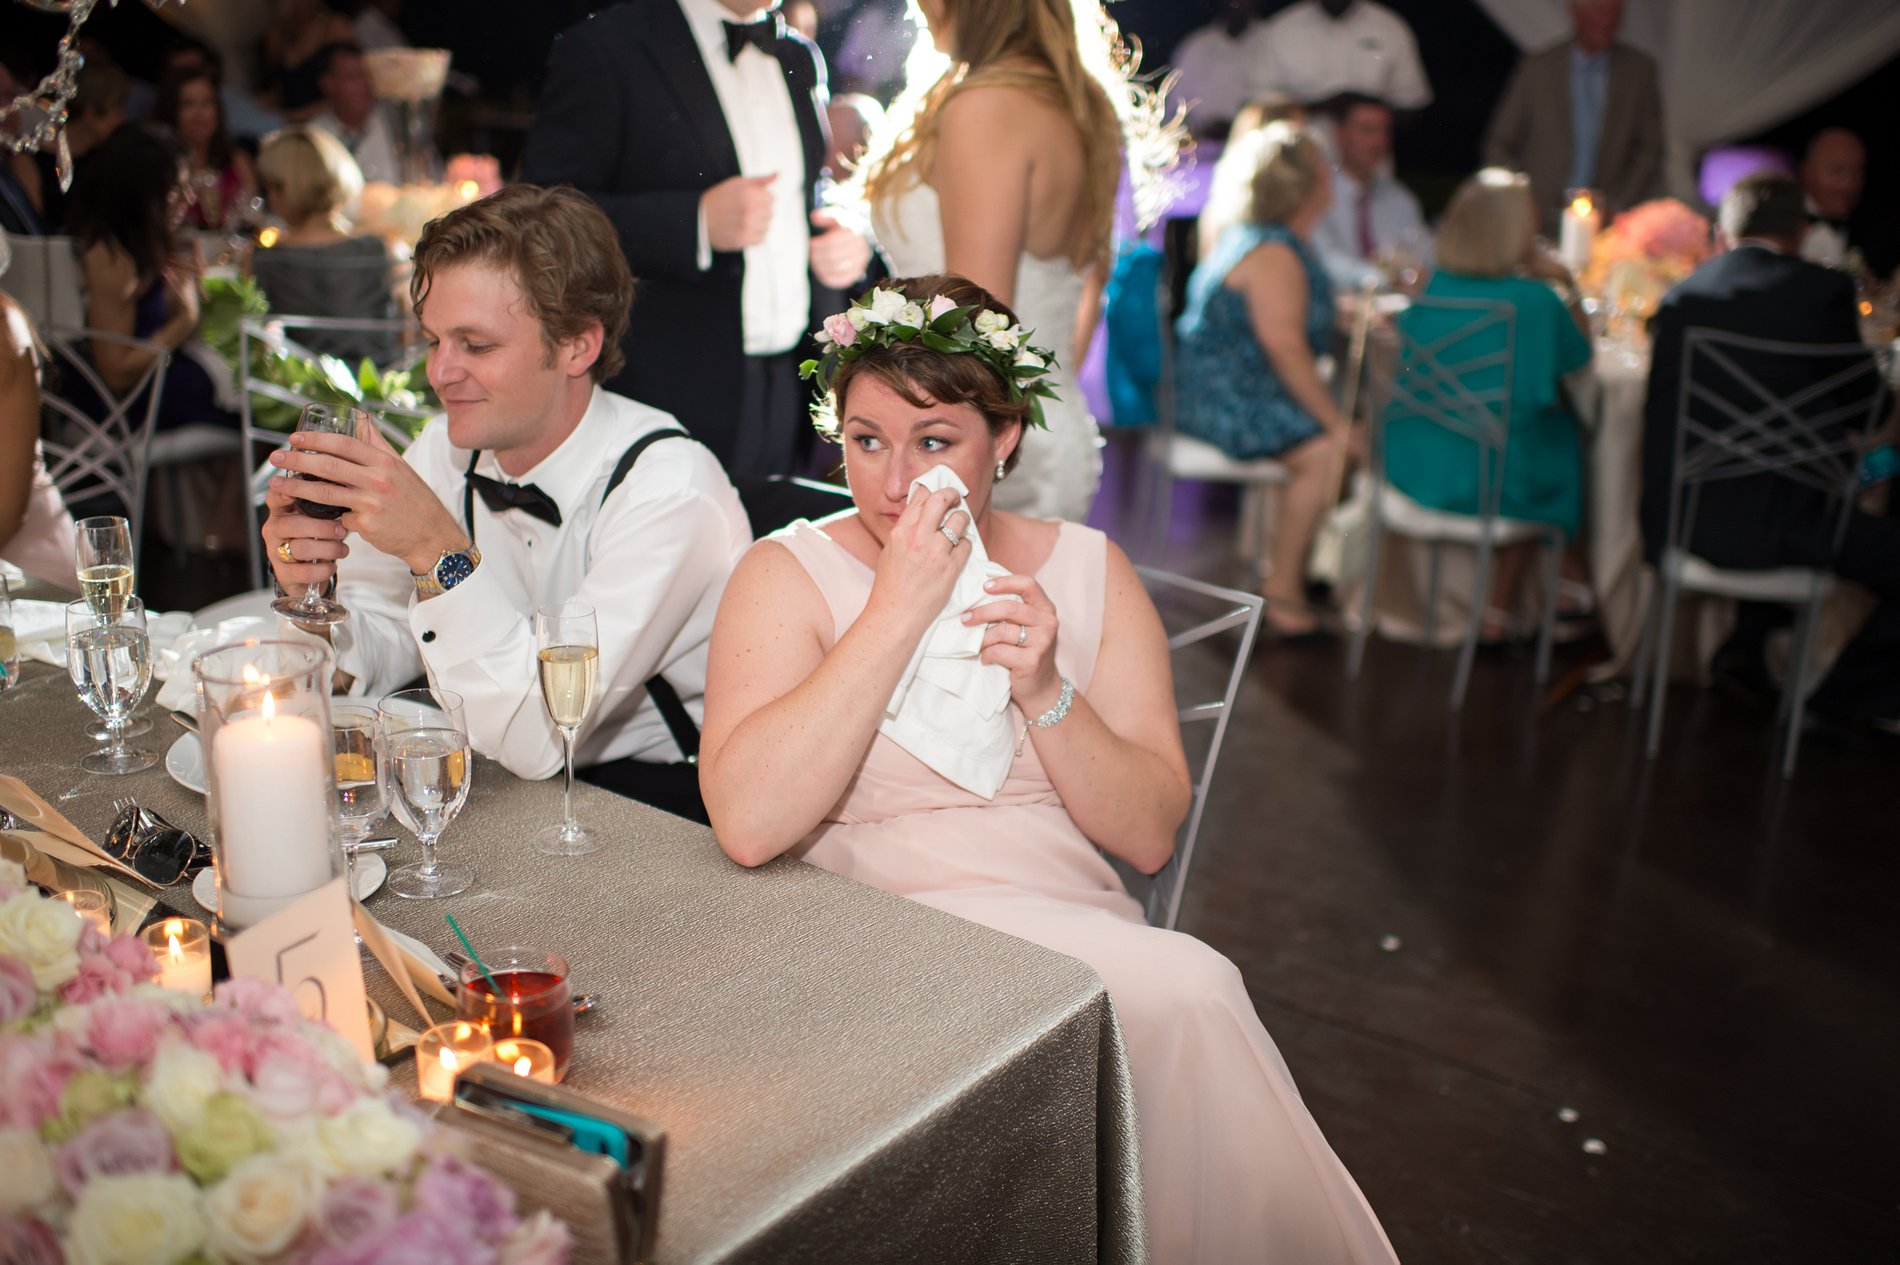 Bridal party crying at a wedding